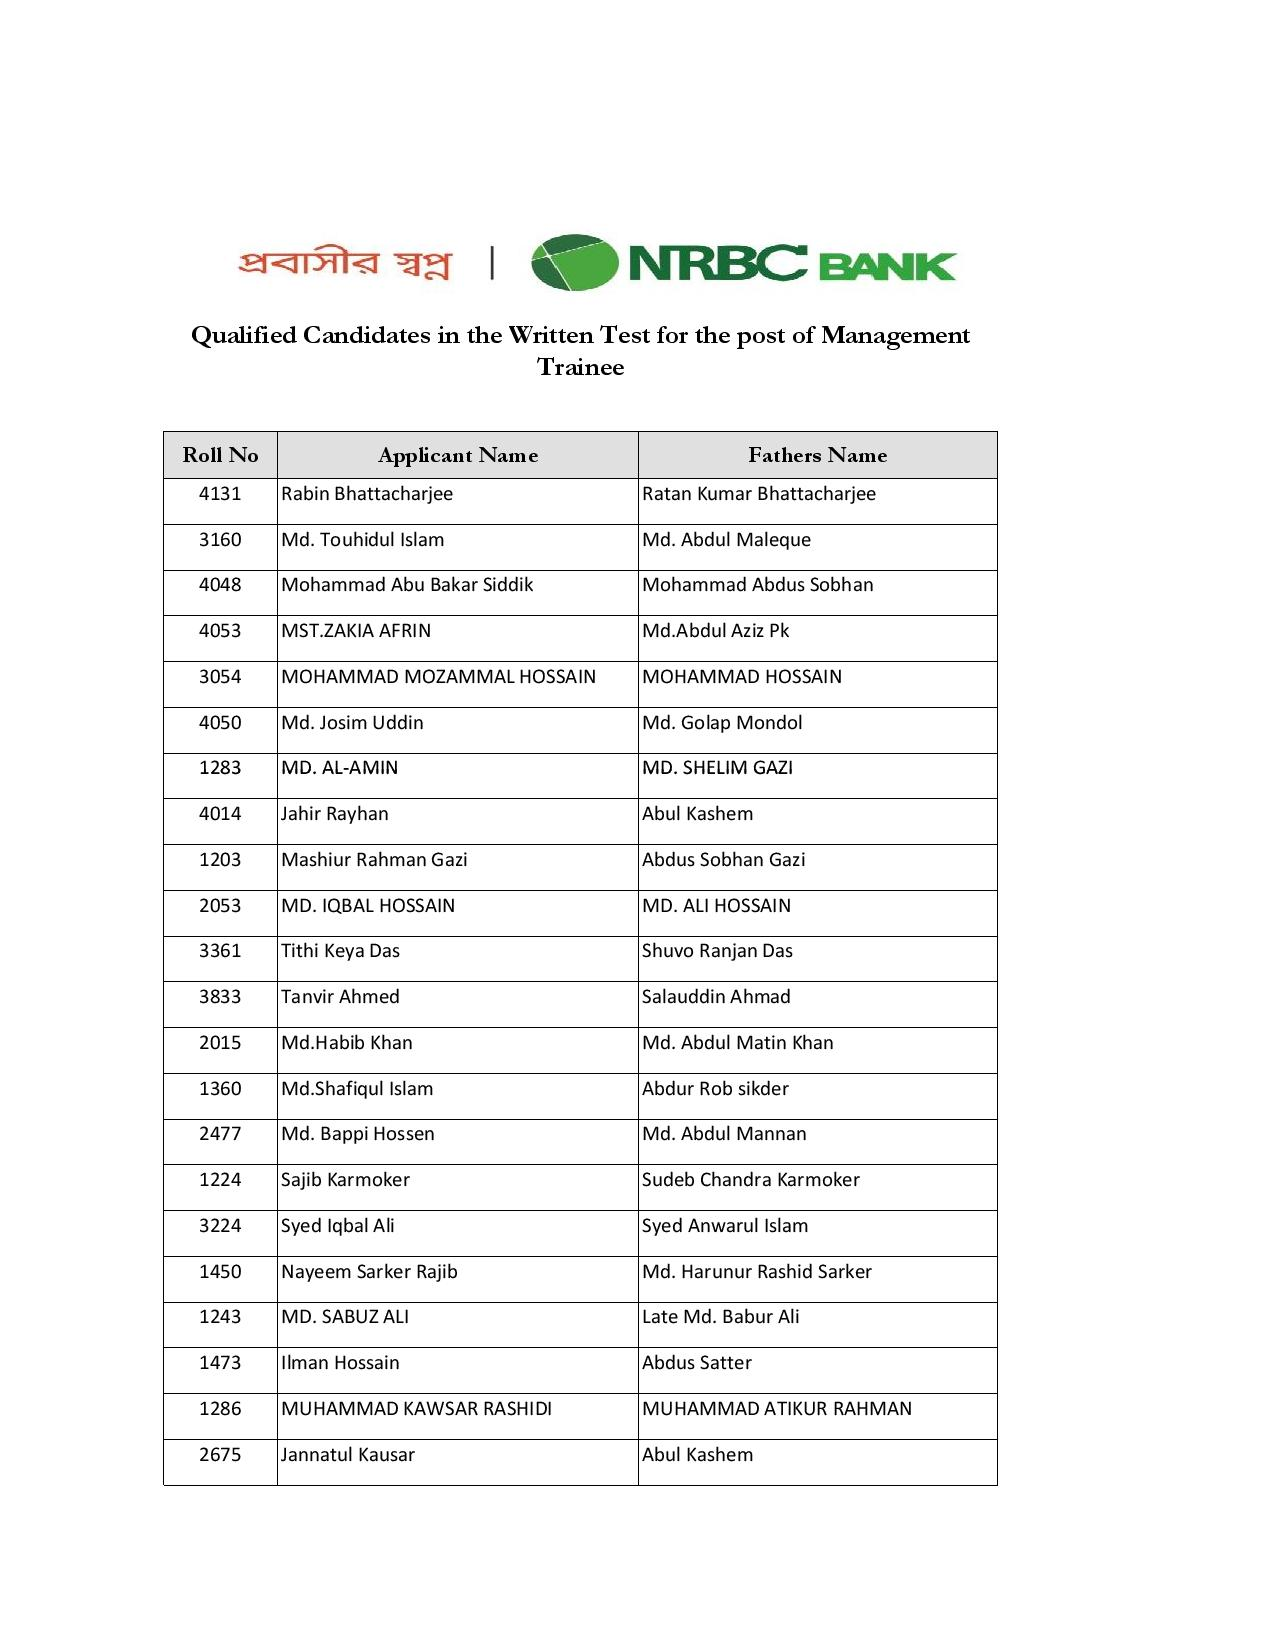 NRBC Bank Exam Admit Card Download Result Date 2019 1